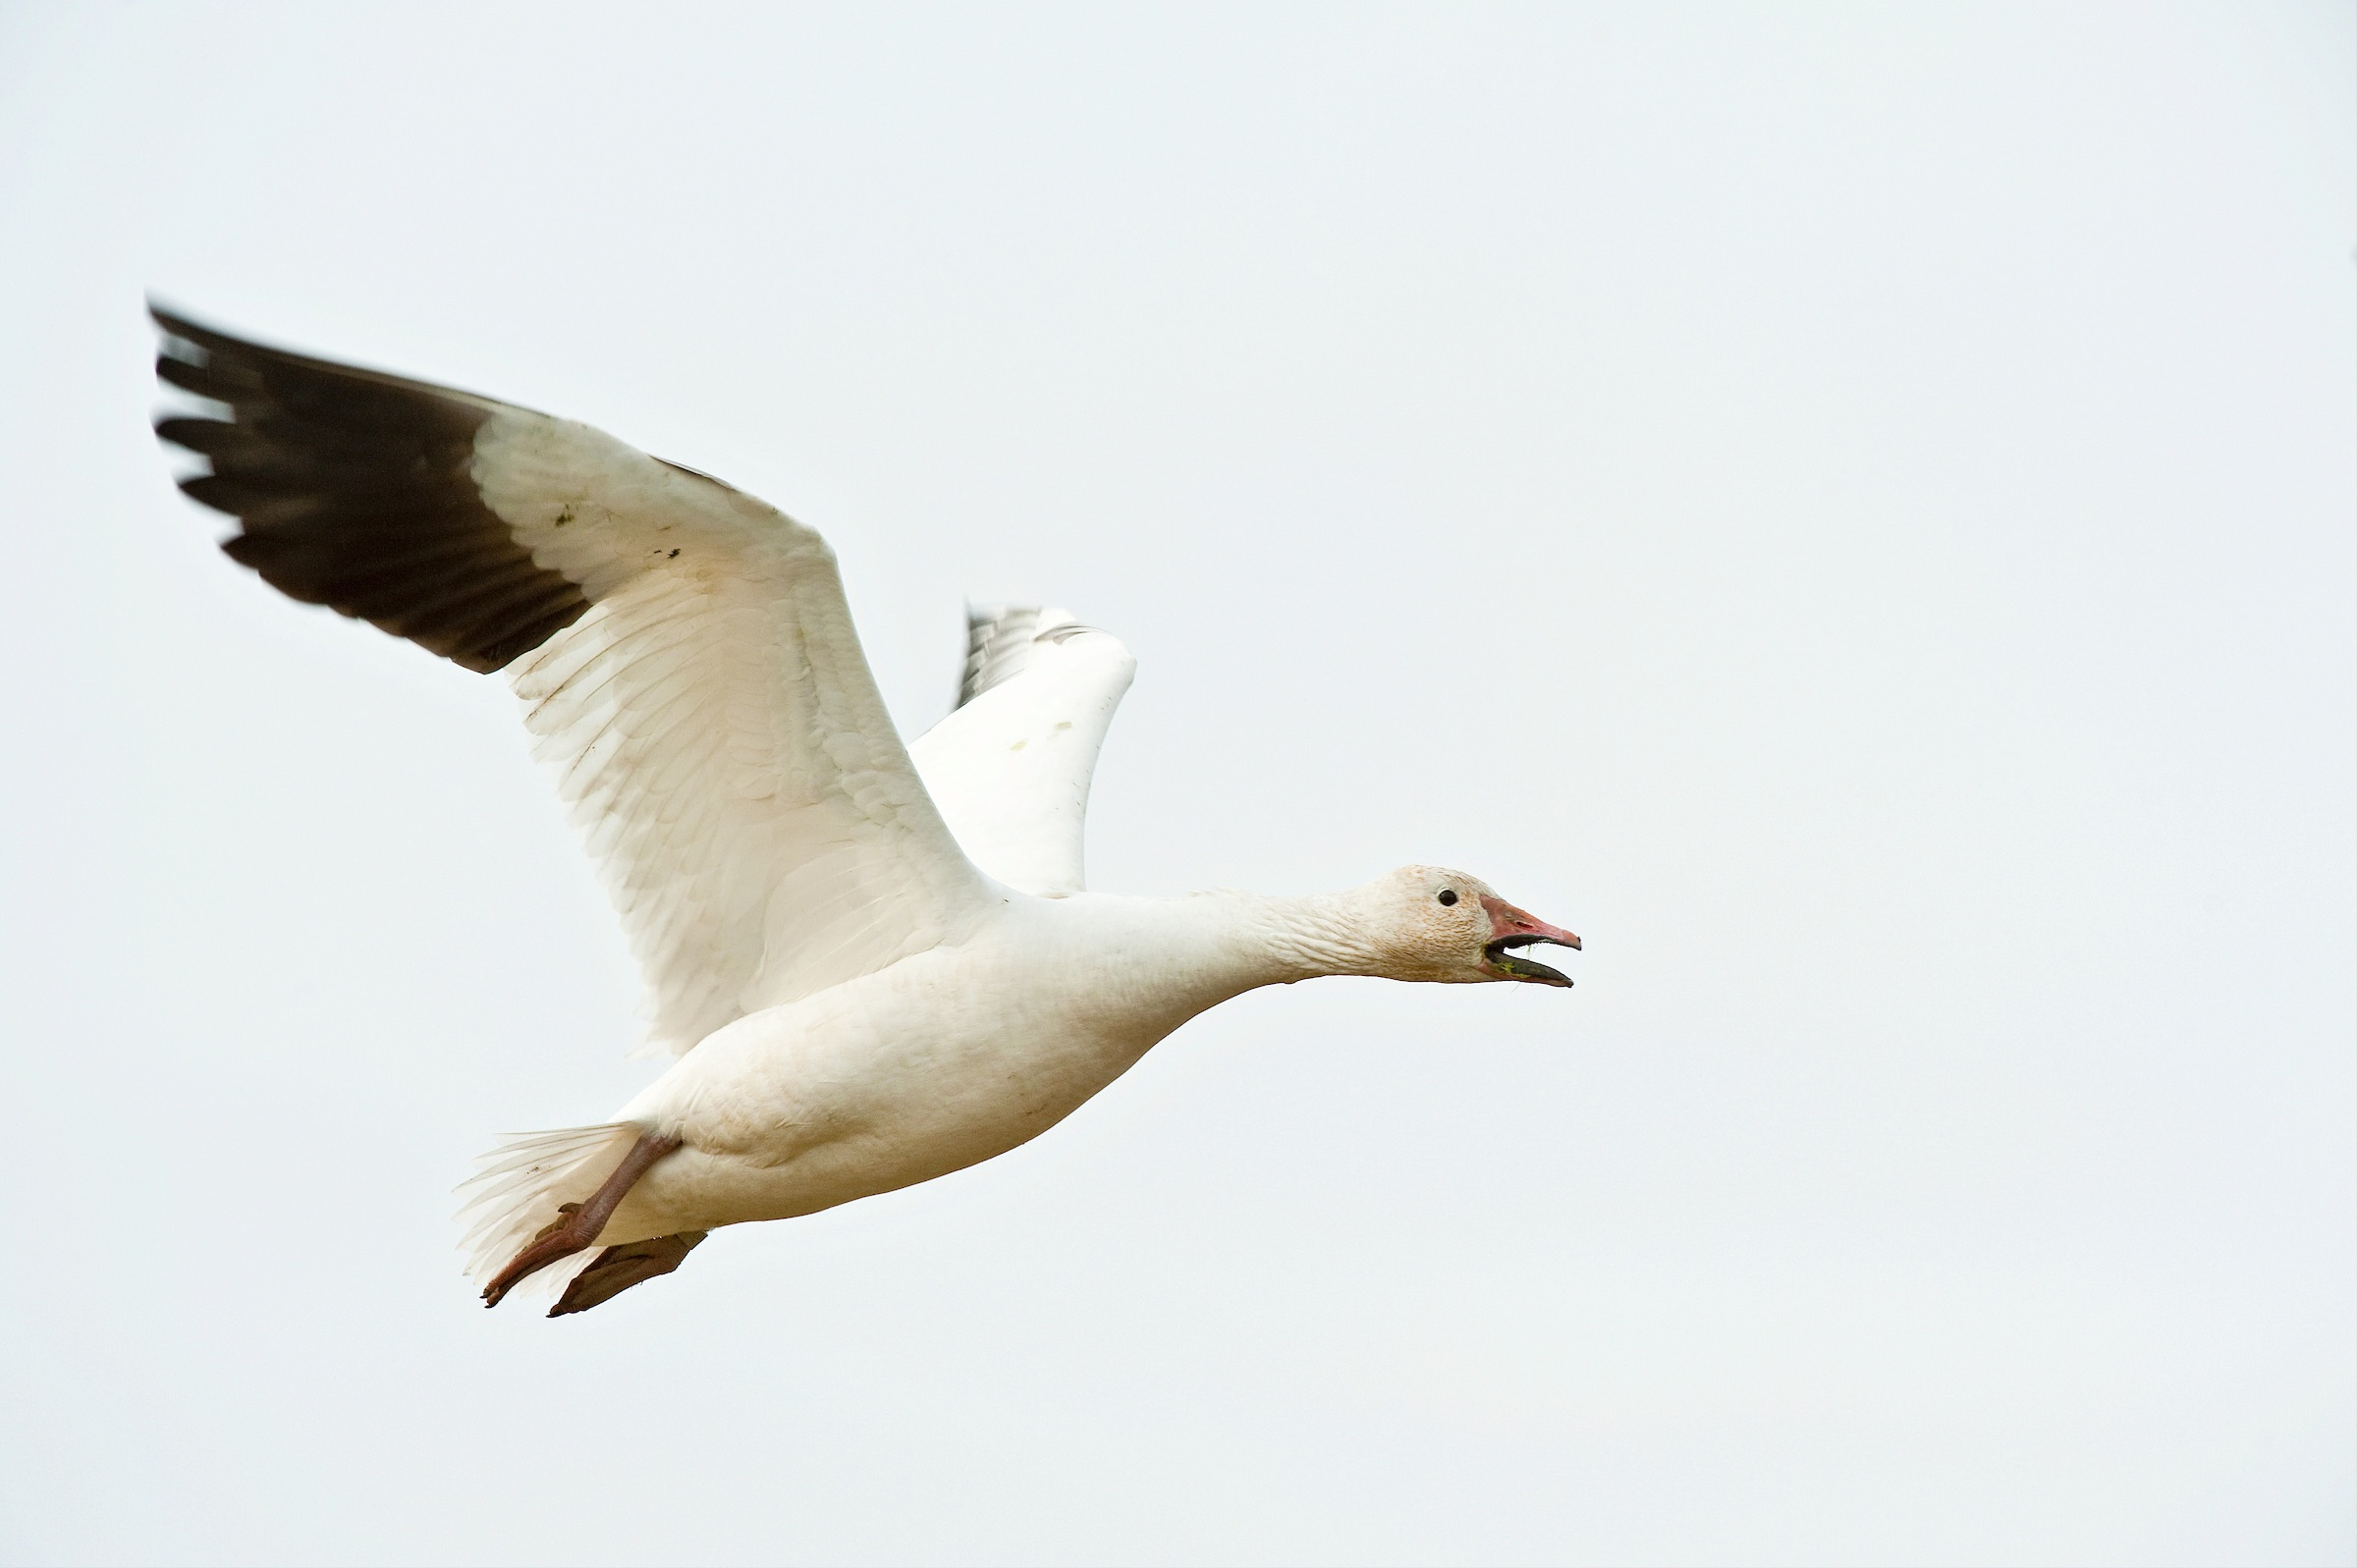 snow goose in flight. © given photography 2018